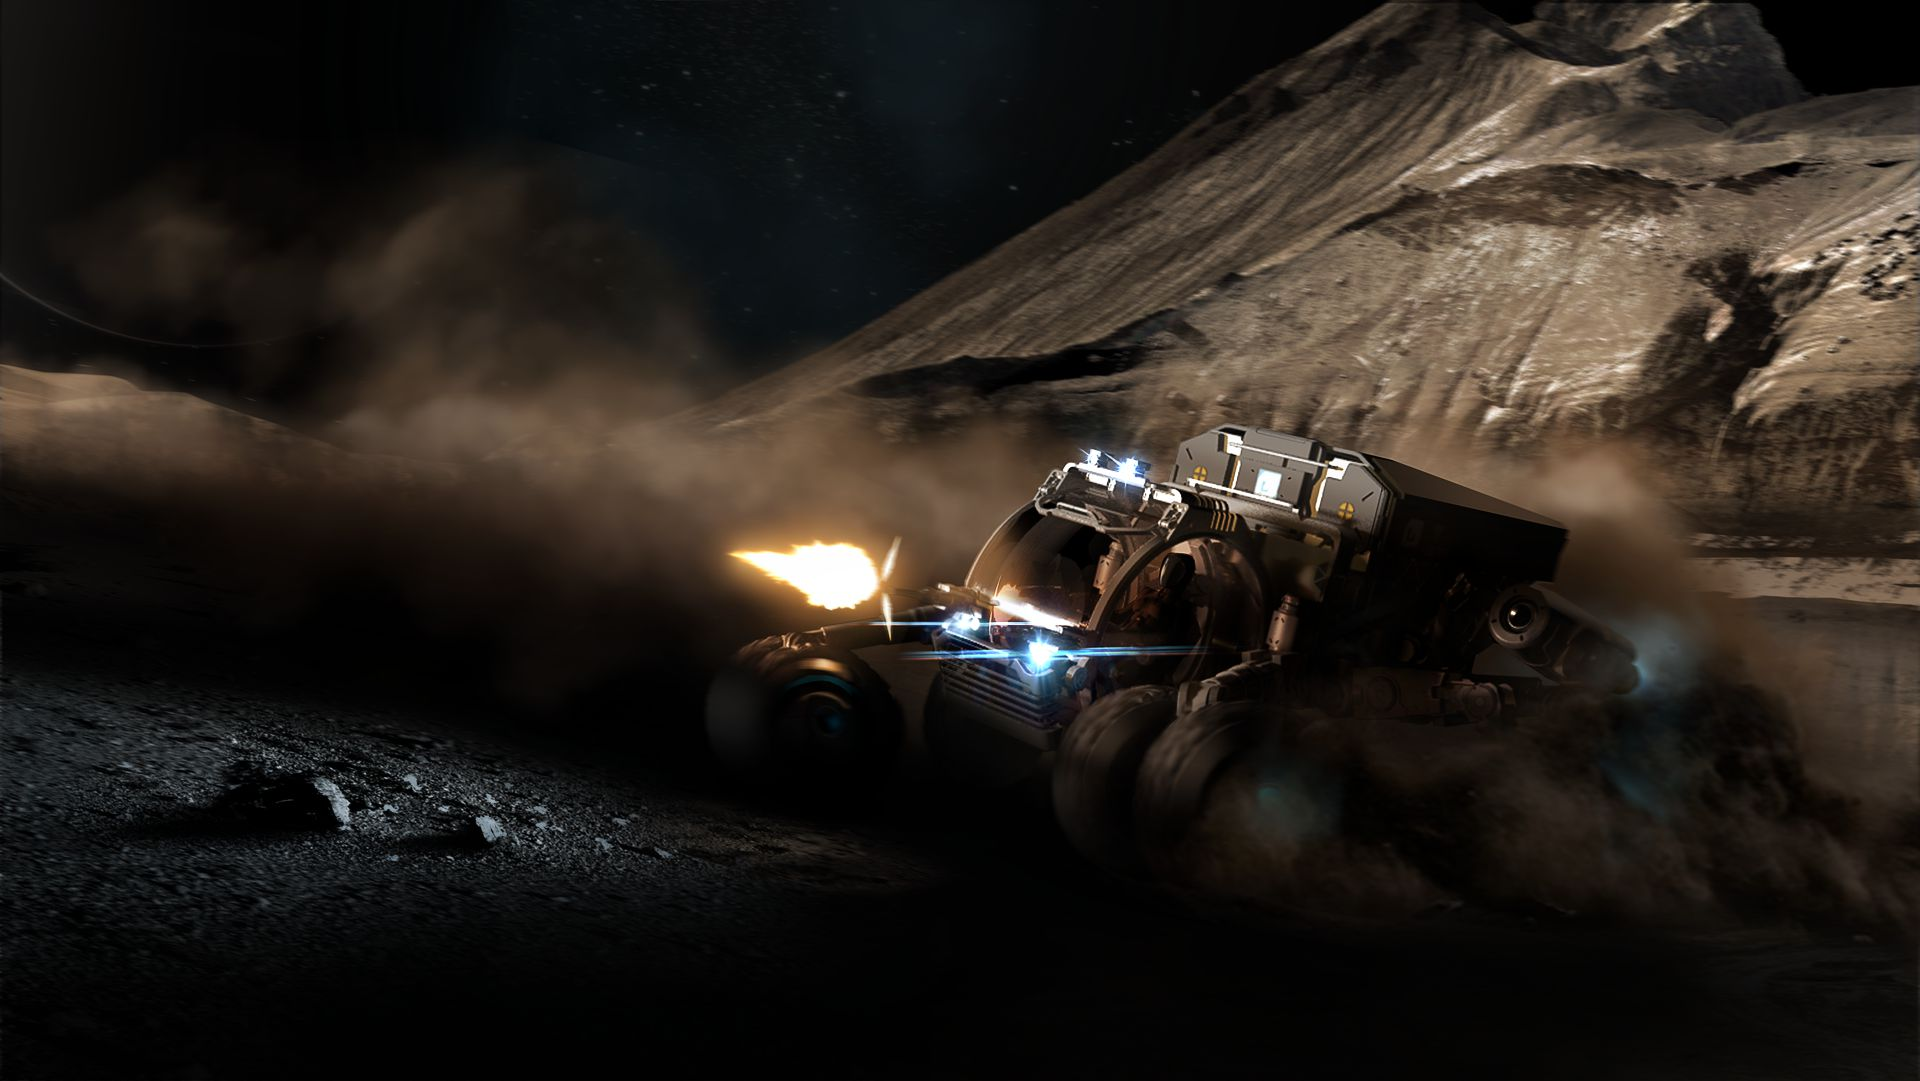 The new Surface Reconnaissance Vehicle (SRV) allows you to roam the planets surface.